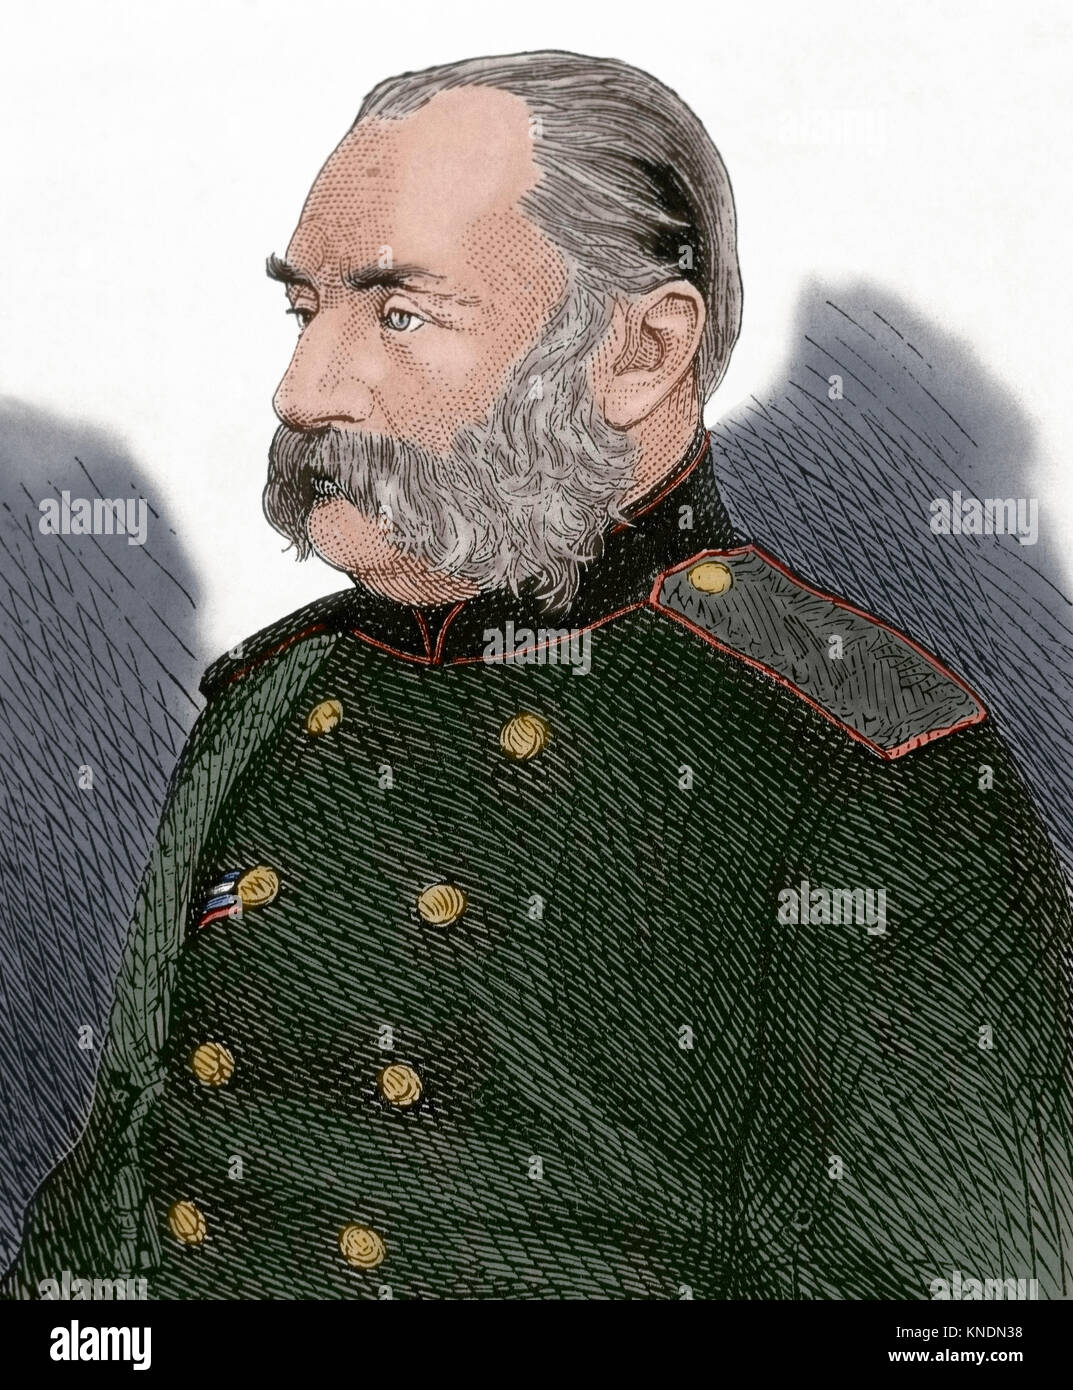 The War in the East. General Perokoitschitzsky of the Russian Army, Chief of Staff of the Southern Army. Portrait. - Stock Image